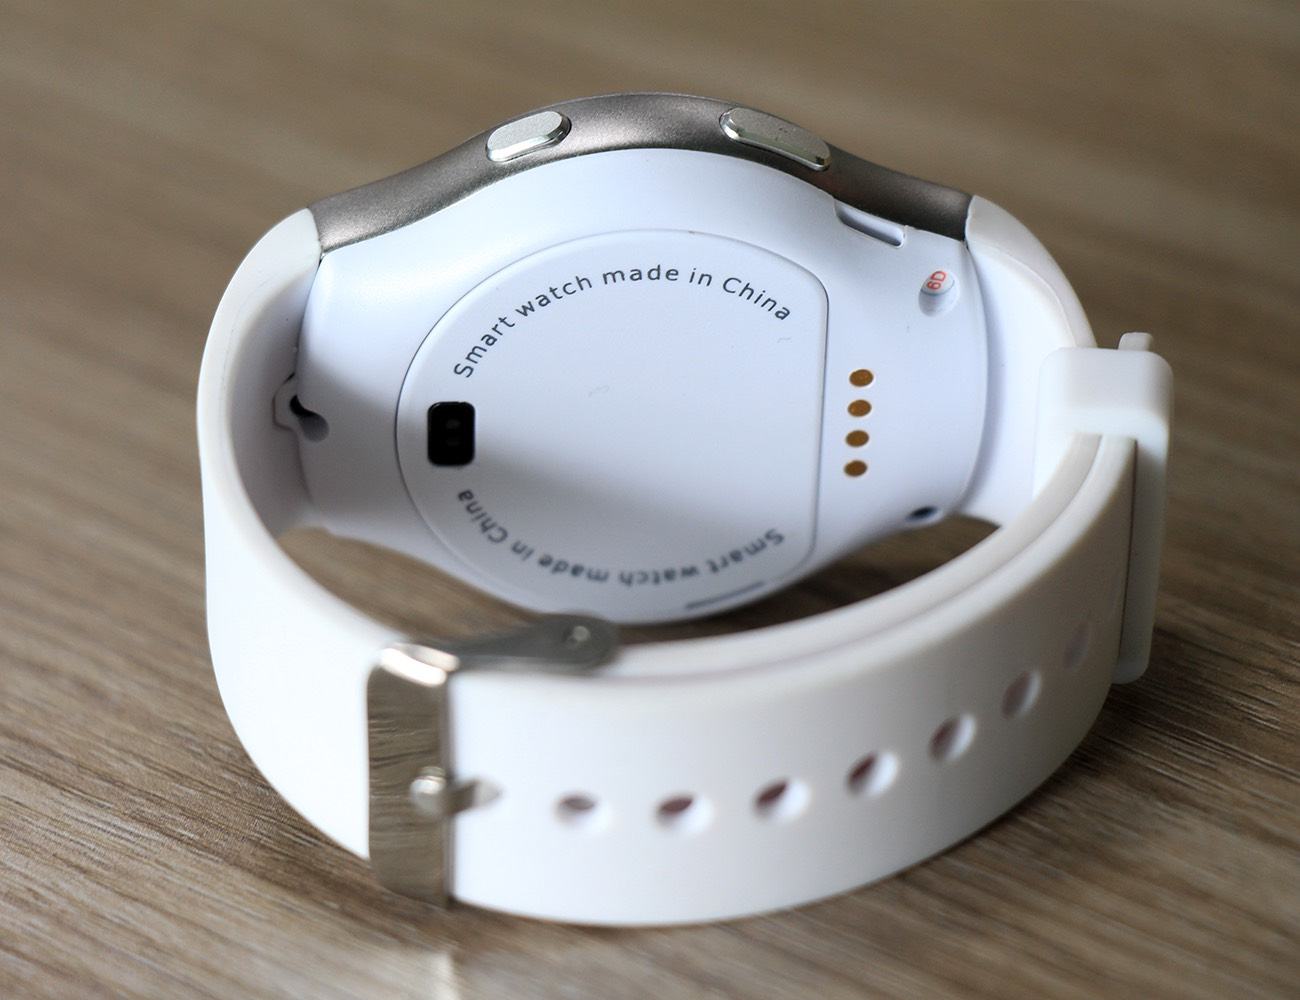 NO.1 G3 Smartwatch With a Full Circular Design